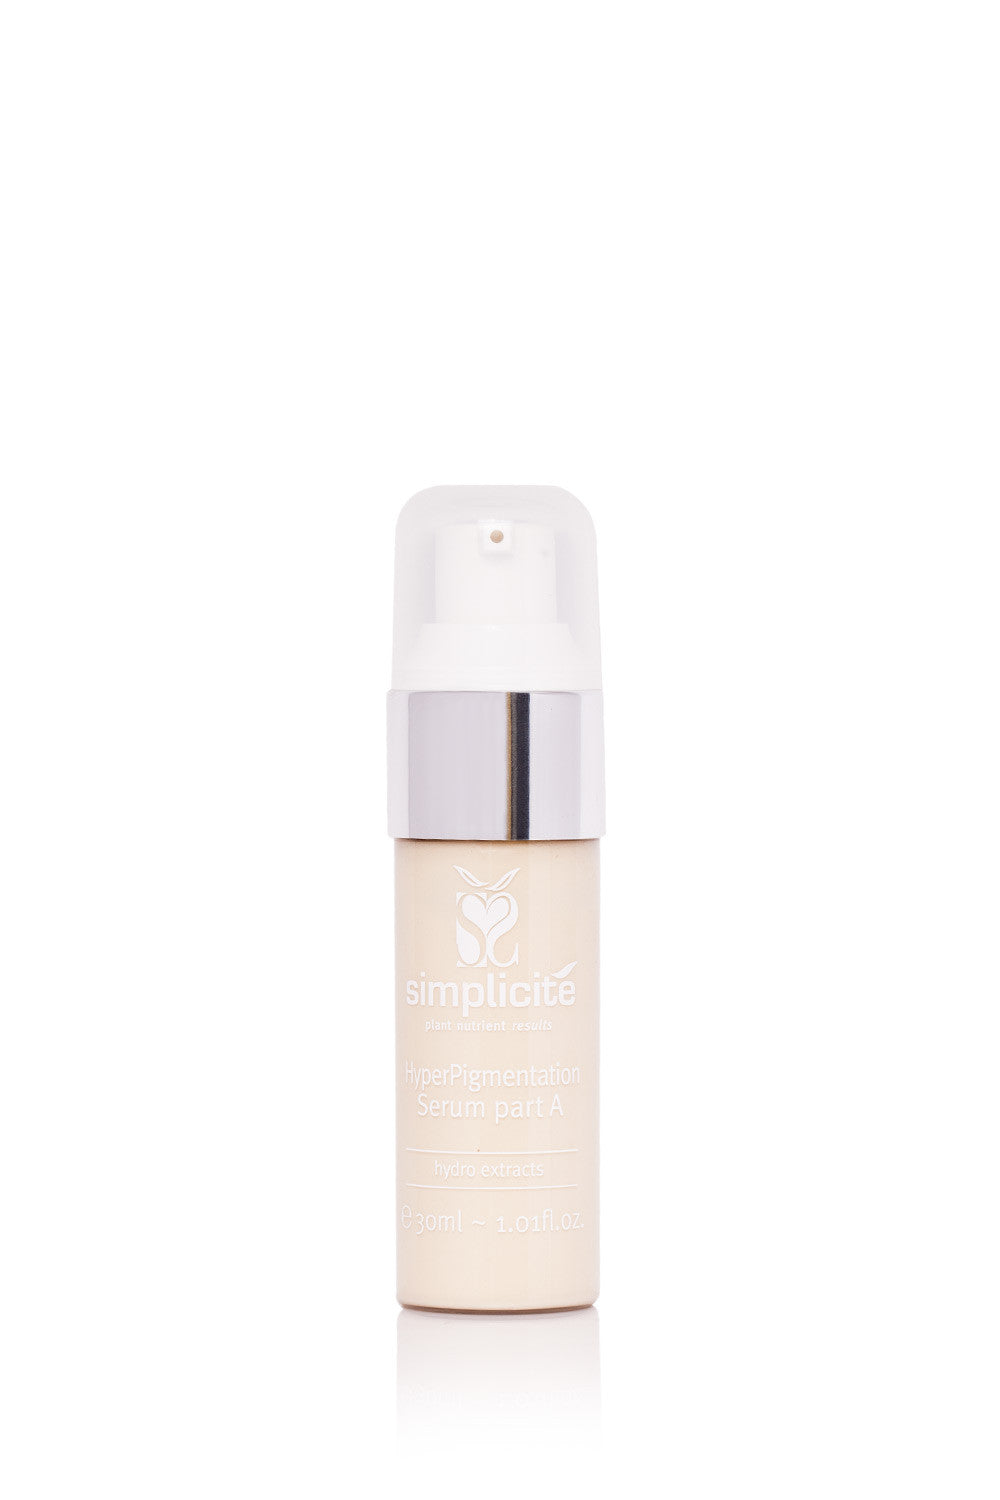 Simplicité Pigmentation Serum Hydro Extracts (part A)